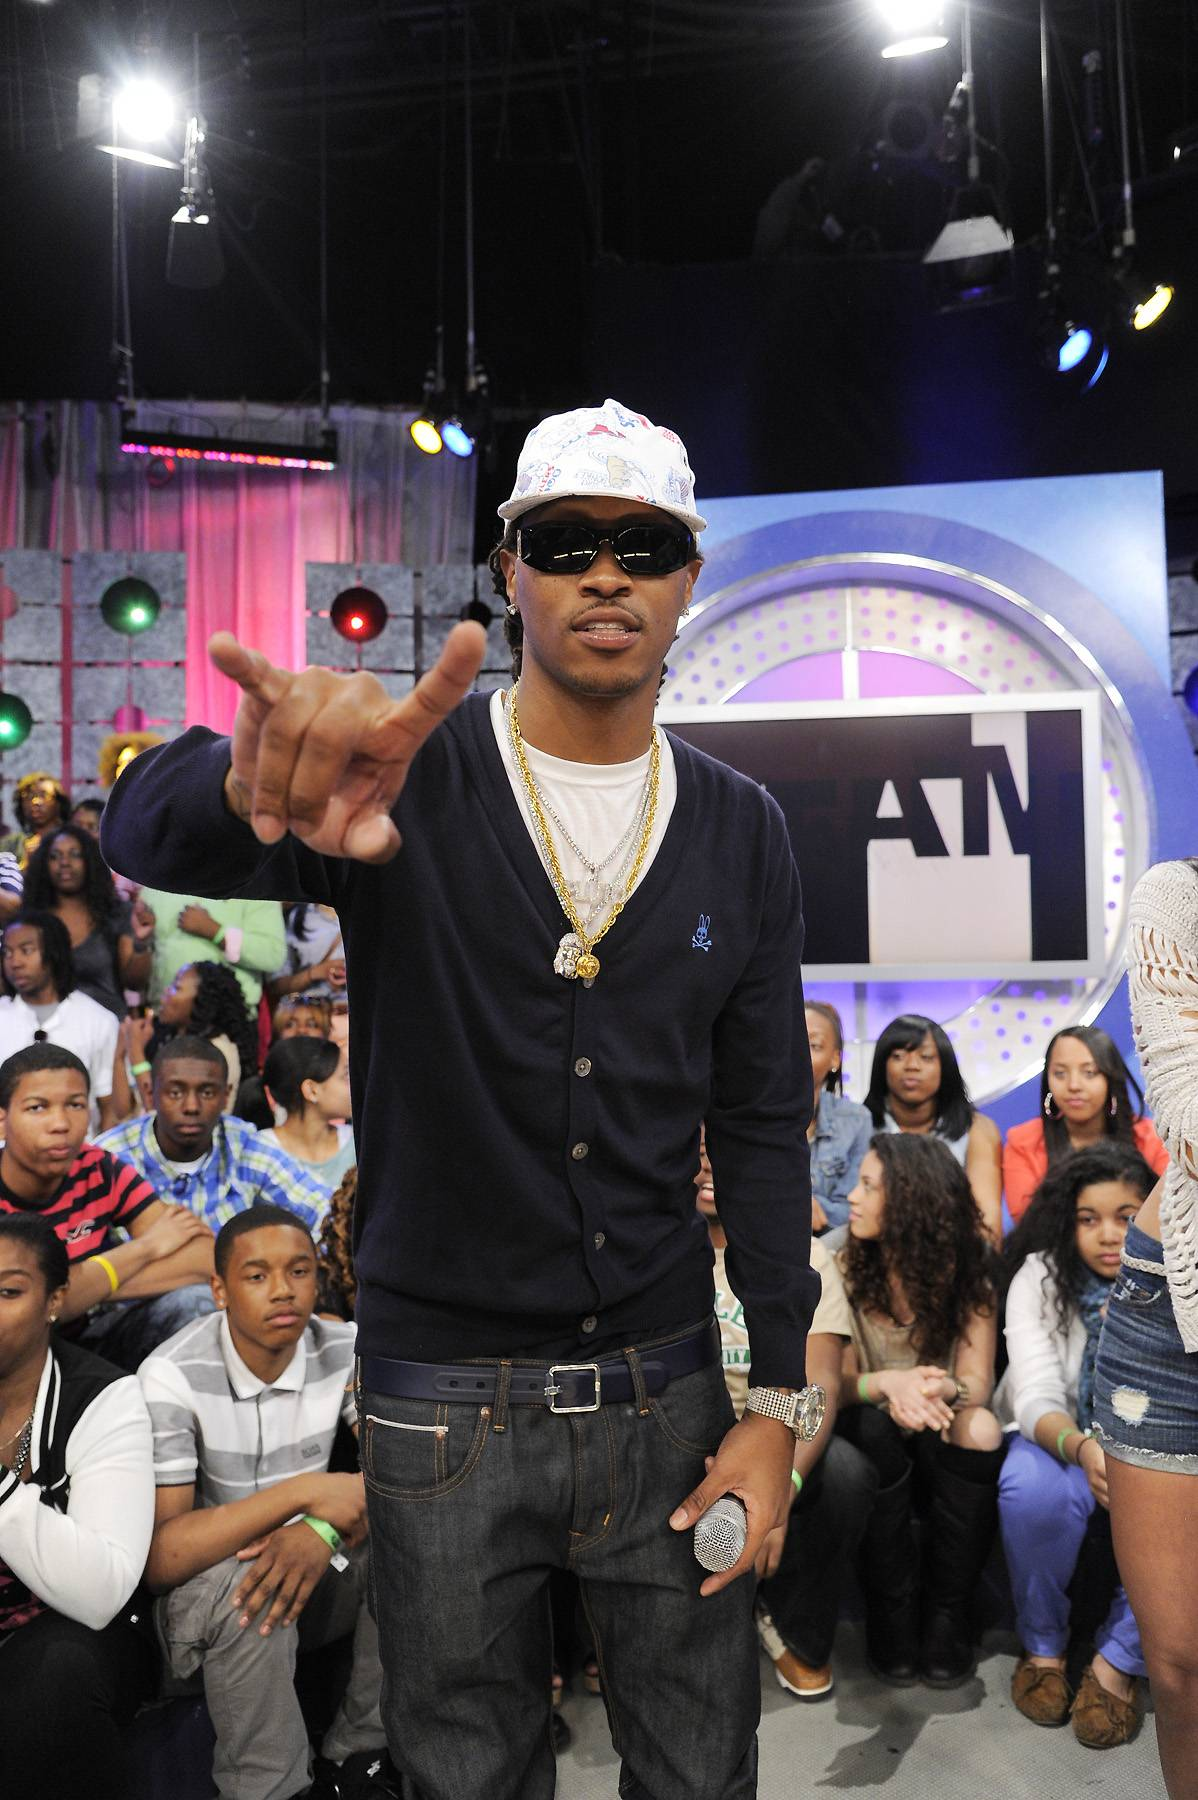 040912-shows-106-park-freestyle-friday-future-6.jpg